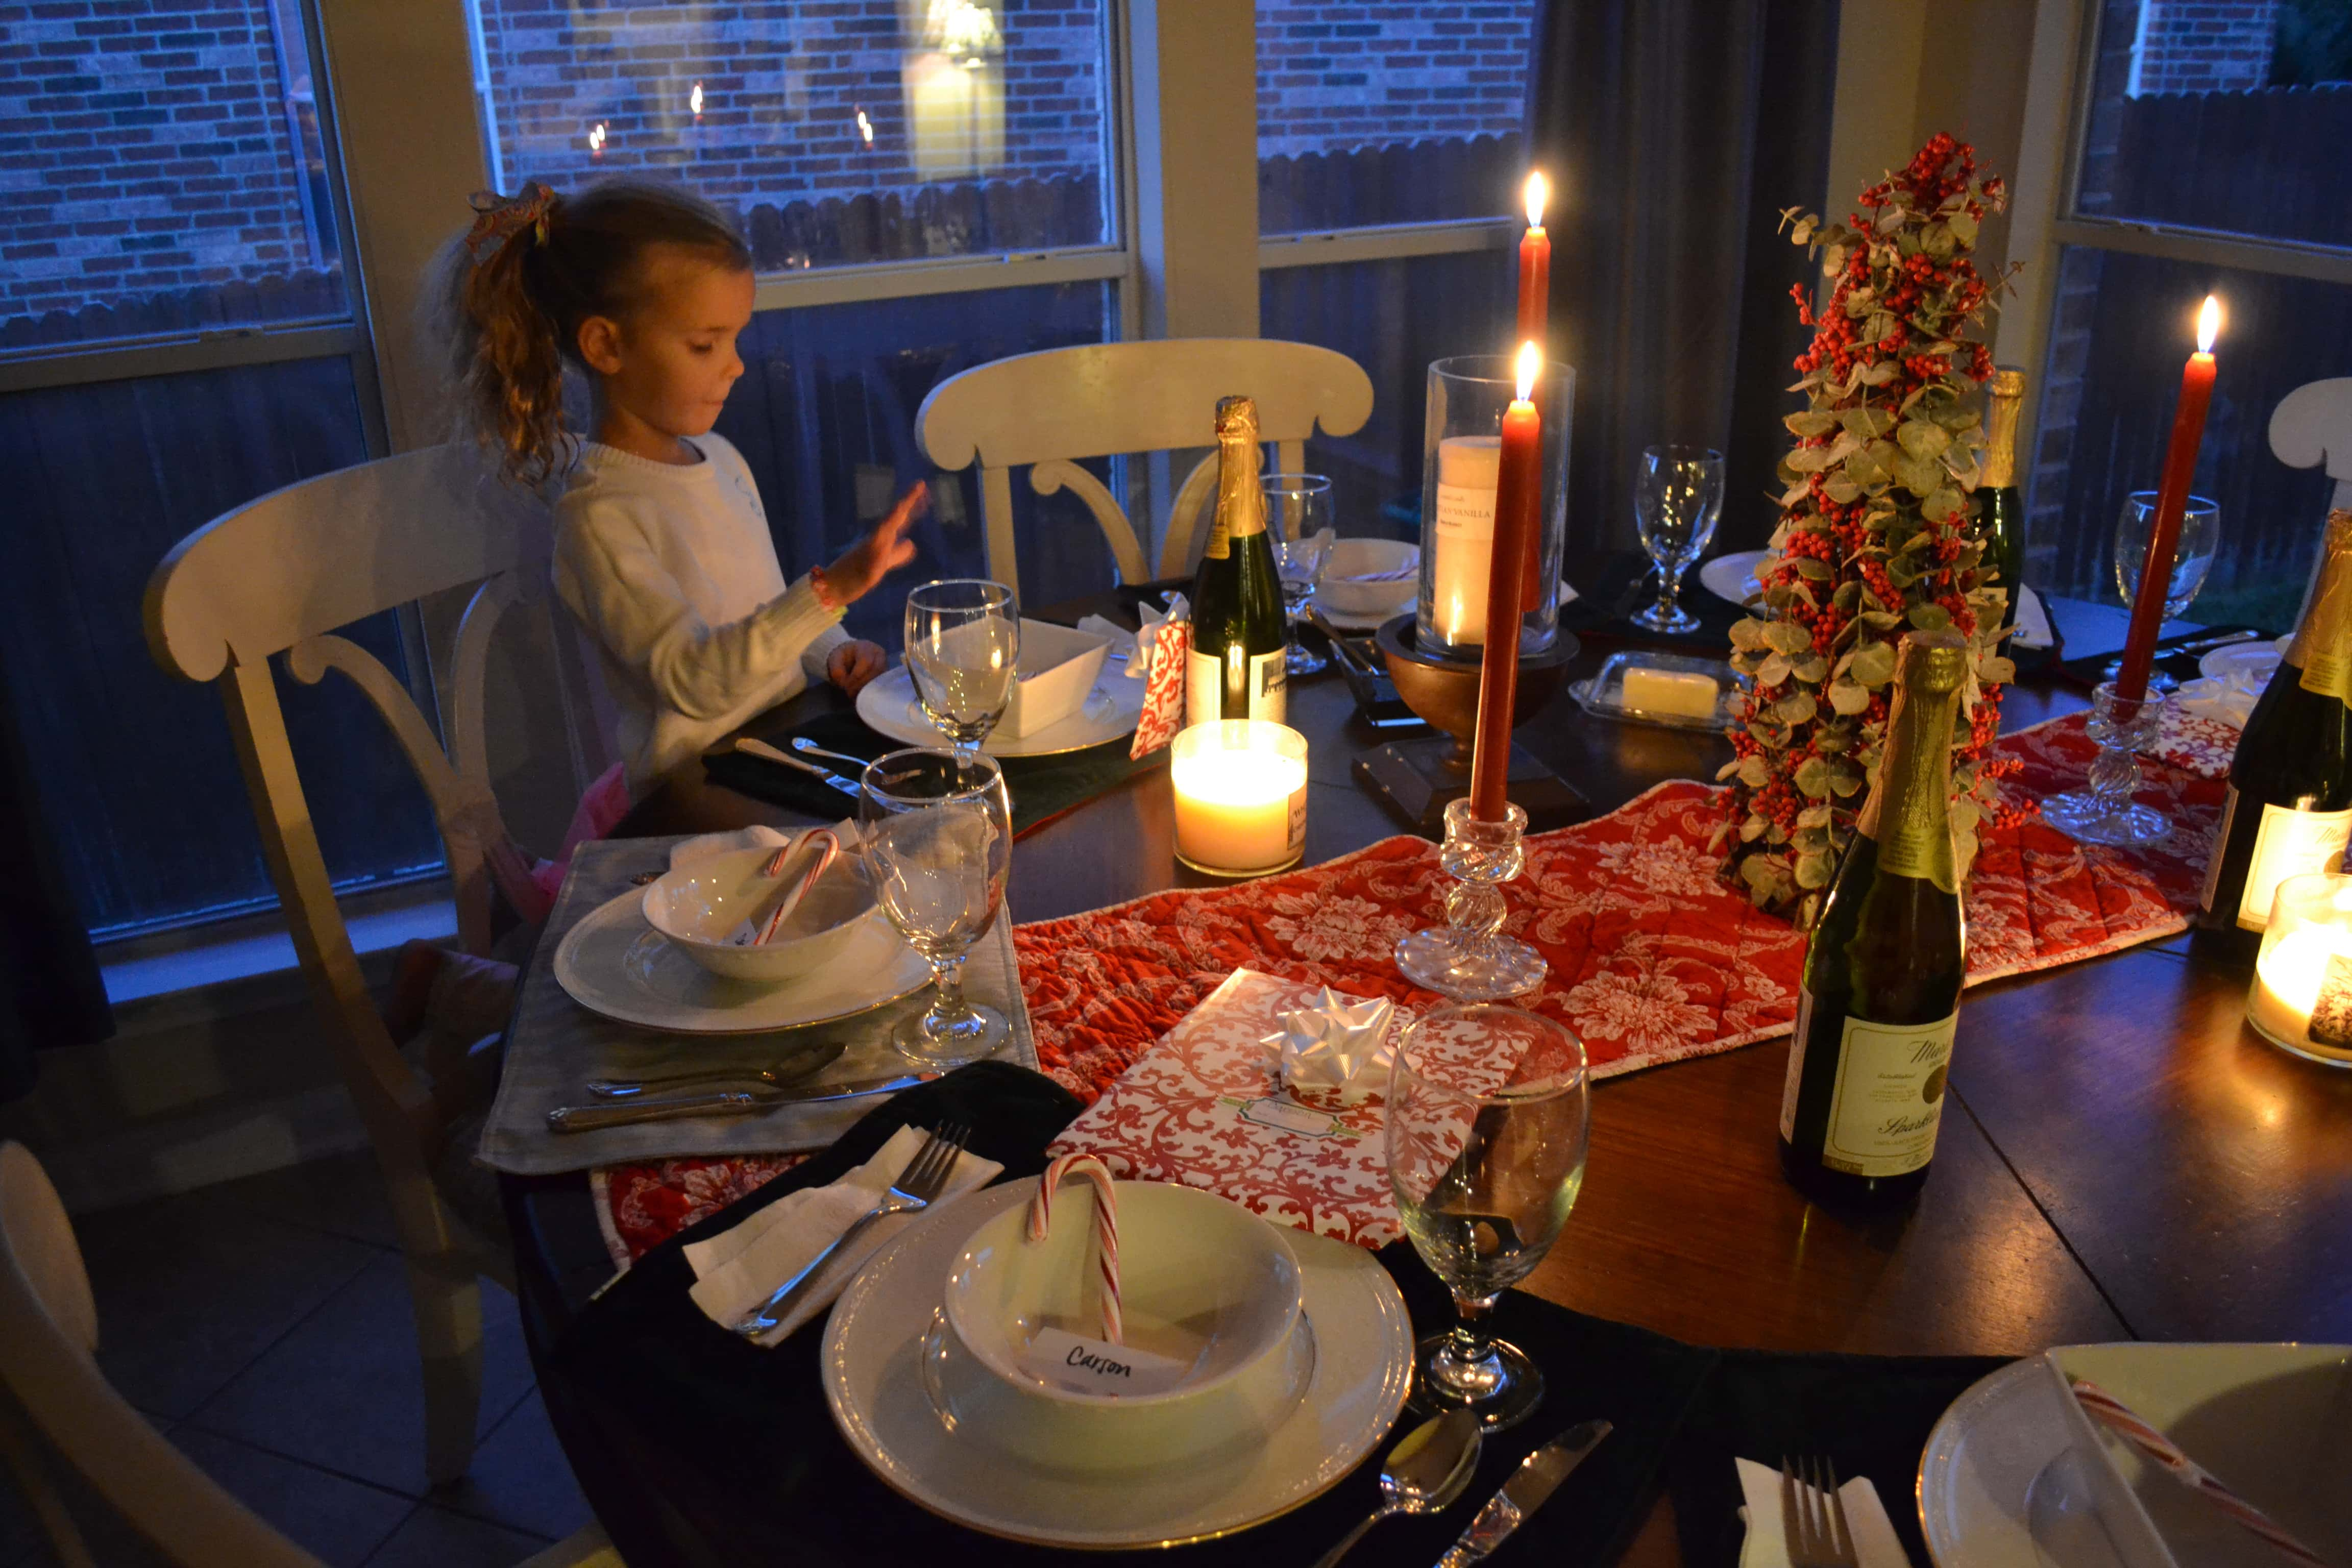 Christmas Bucket List. 10 Ways to Feel the Christmas Spirit by Modern Honey. Christmas Eve Dinner.